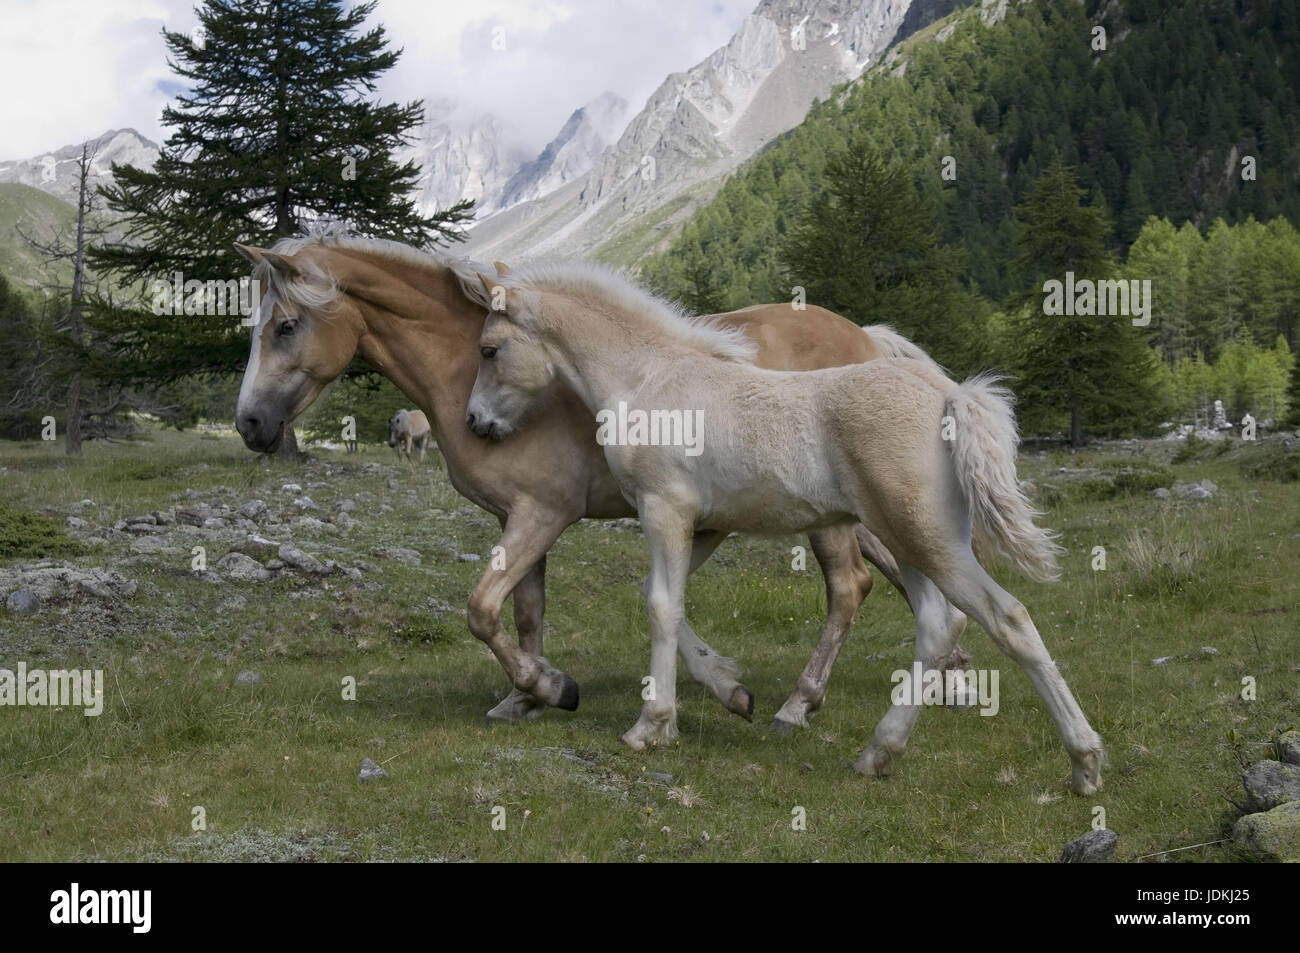 Haflinger horse with foal, Haflinger horse and foal, Haflinger Pferd mit Fohlen,  Haflinger horse and foal - Stock Image